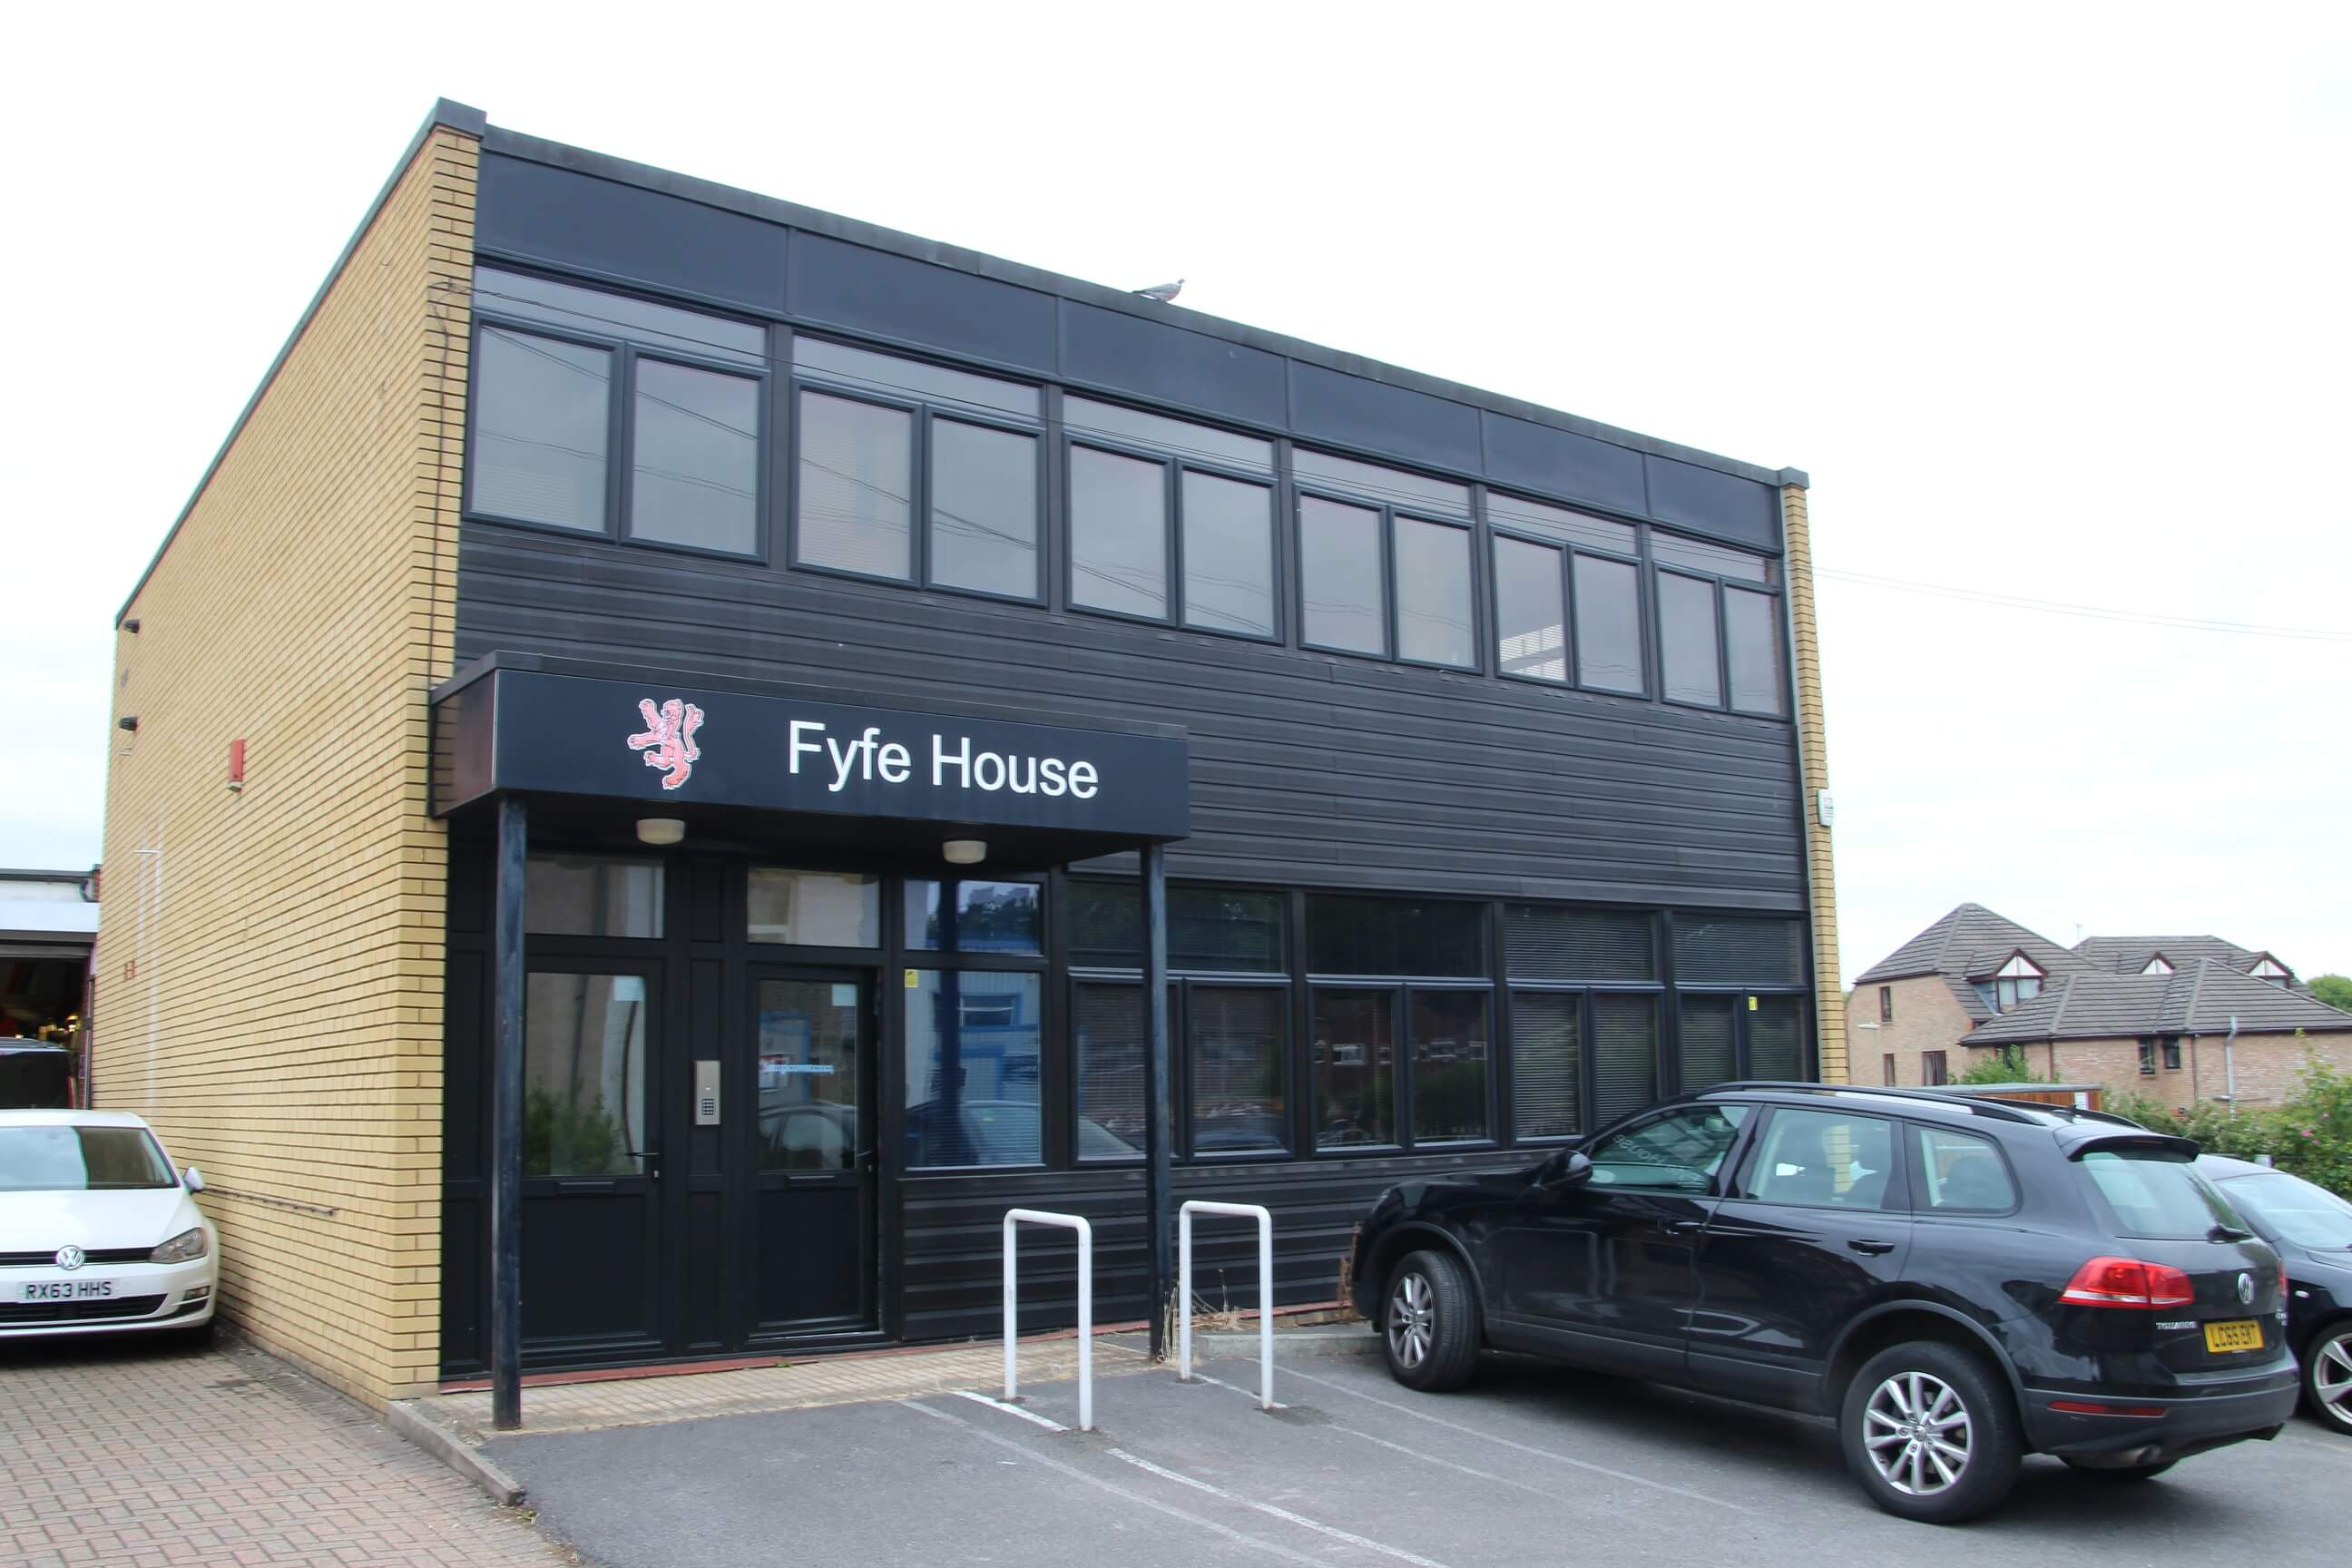 Tech TV takes space at Fyfe House in Fleet